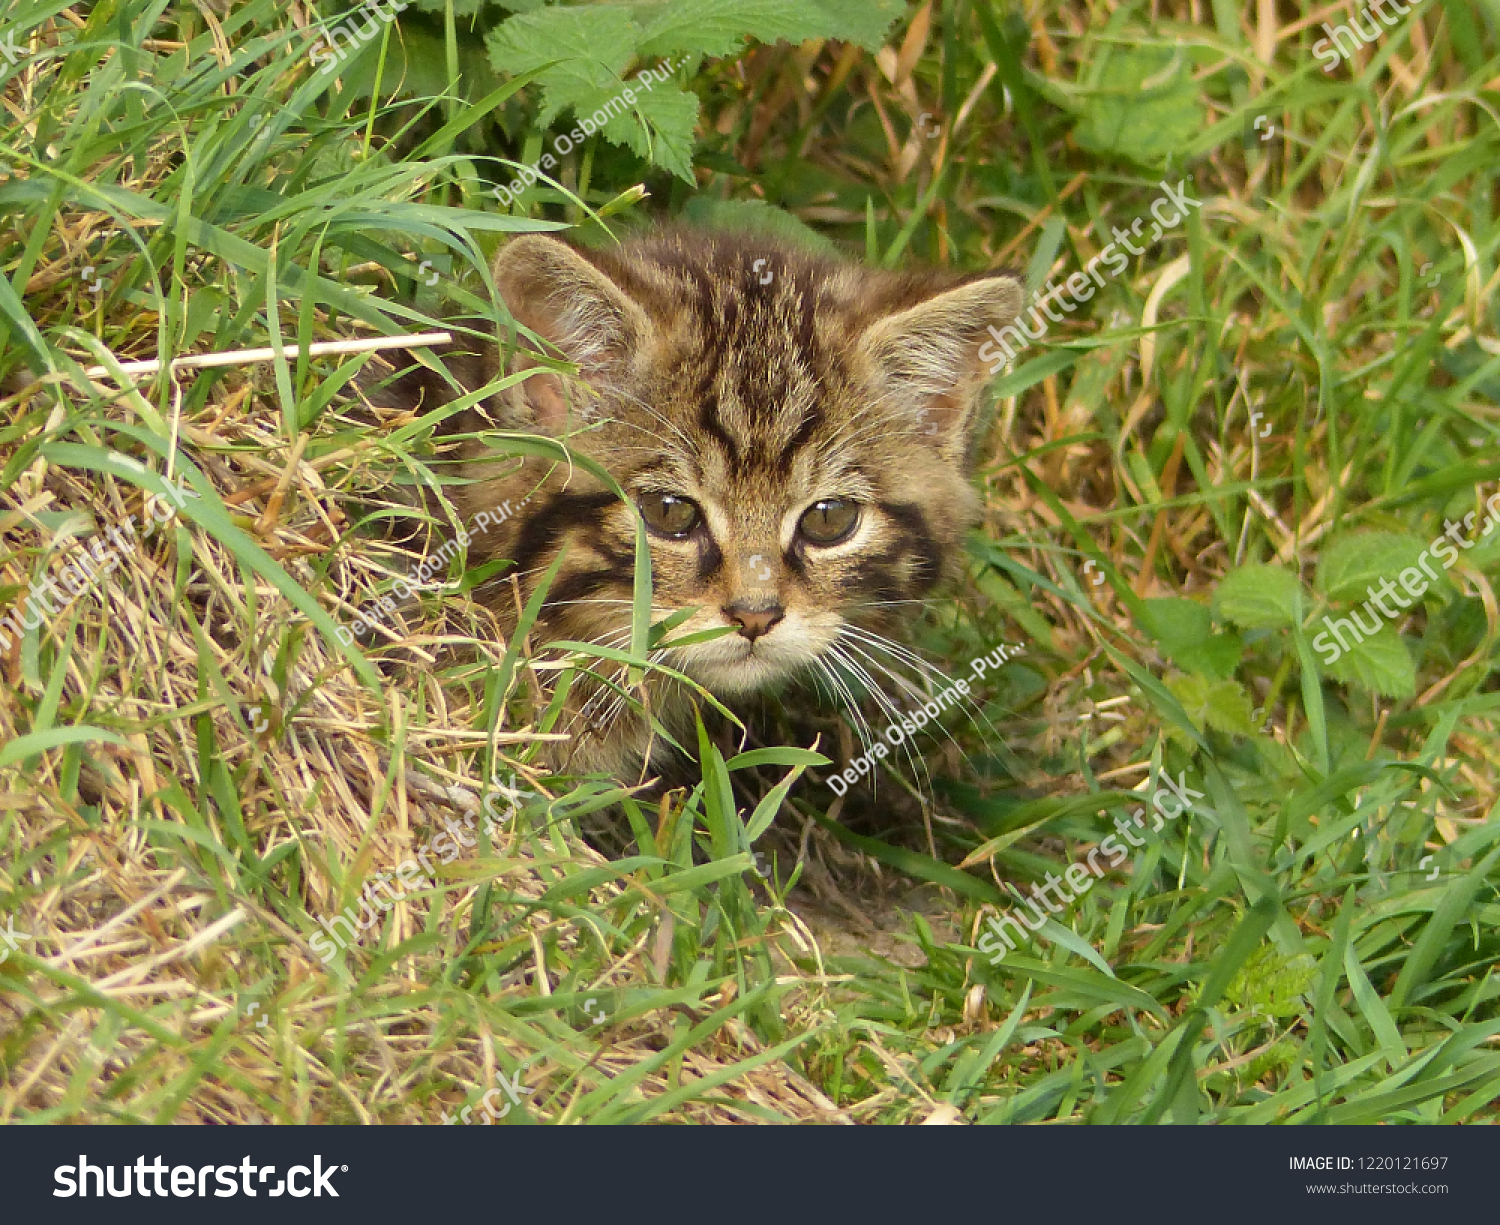 Scottish native wildcat wild cat Felis silvestris grampia kitten face eyes